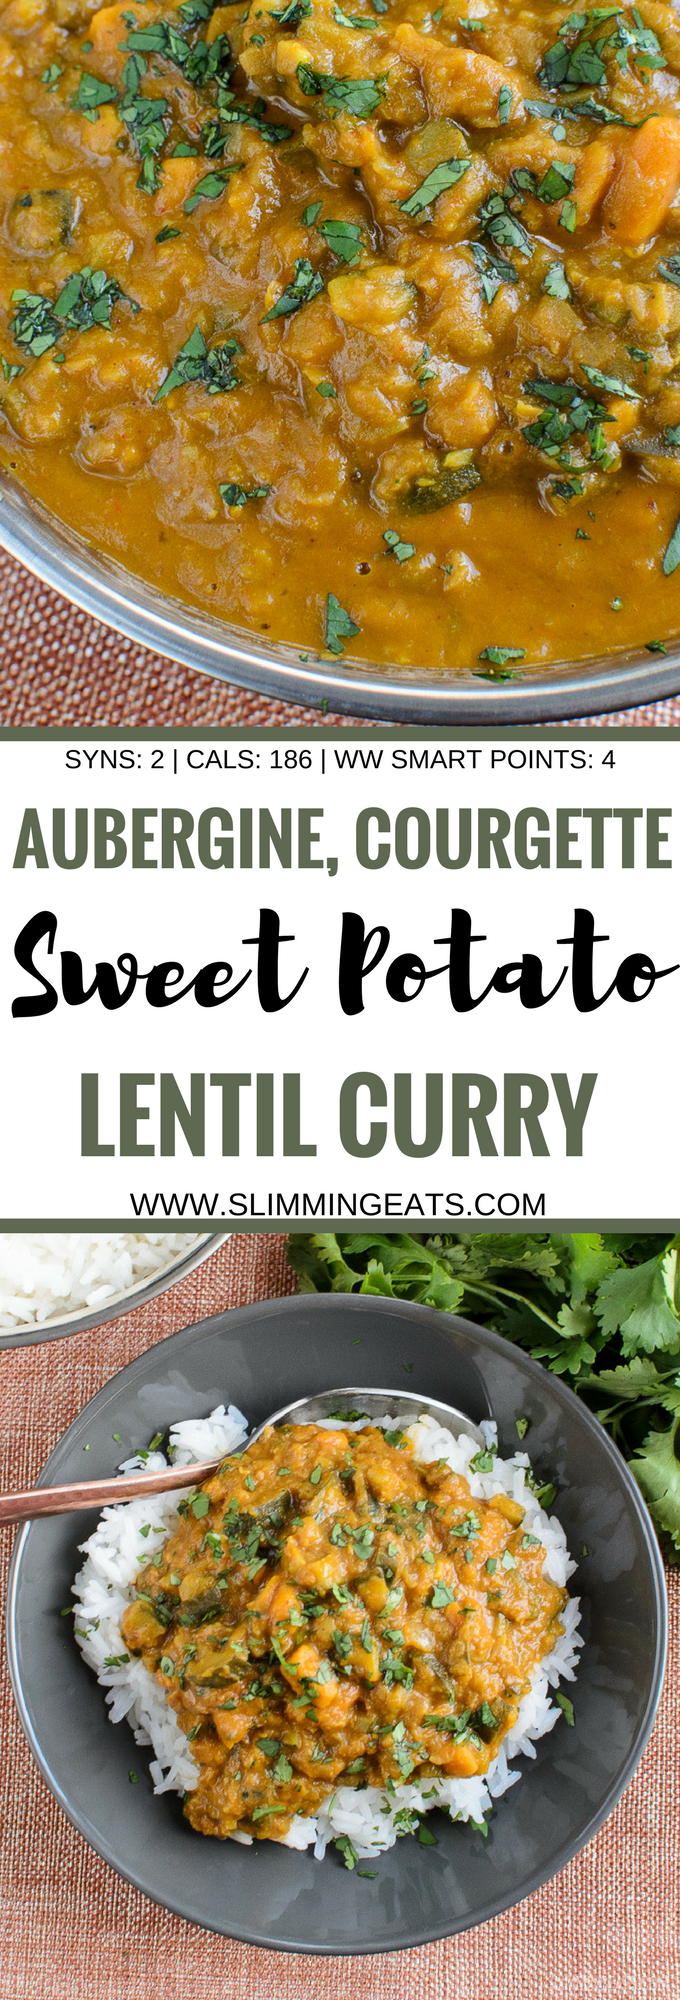 Slimming Eats Low Syn Aubergine, Courgette, Sweet Potato and Lentil Curry - gluten free, dairy free, vegetarian, Slimming World, Instant Pot and Weight Watchers friendly